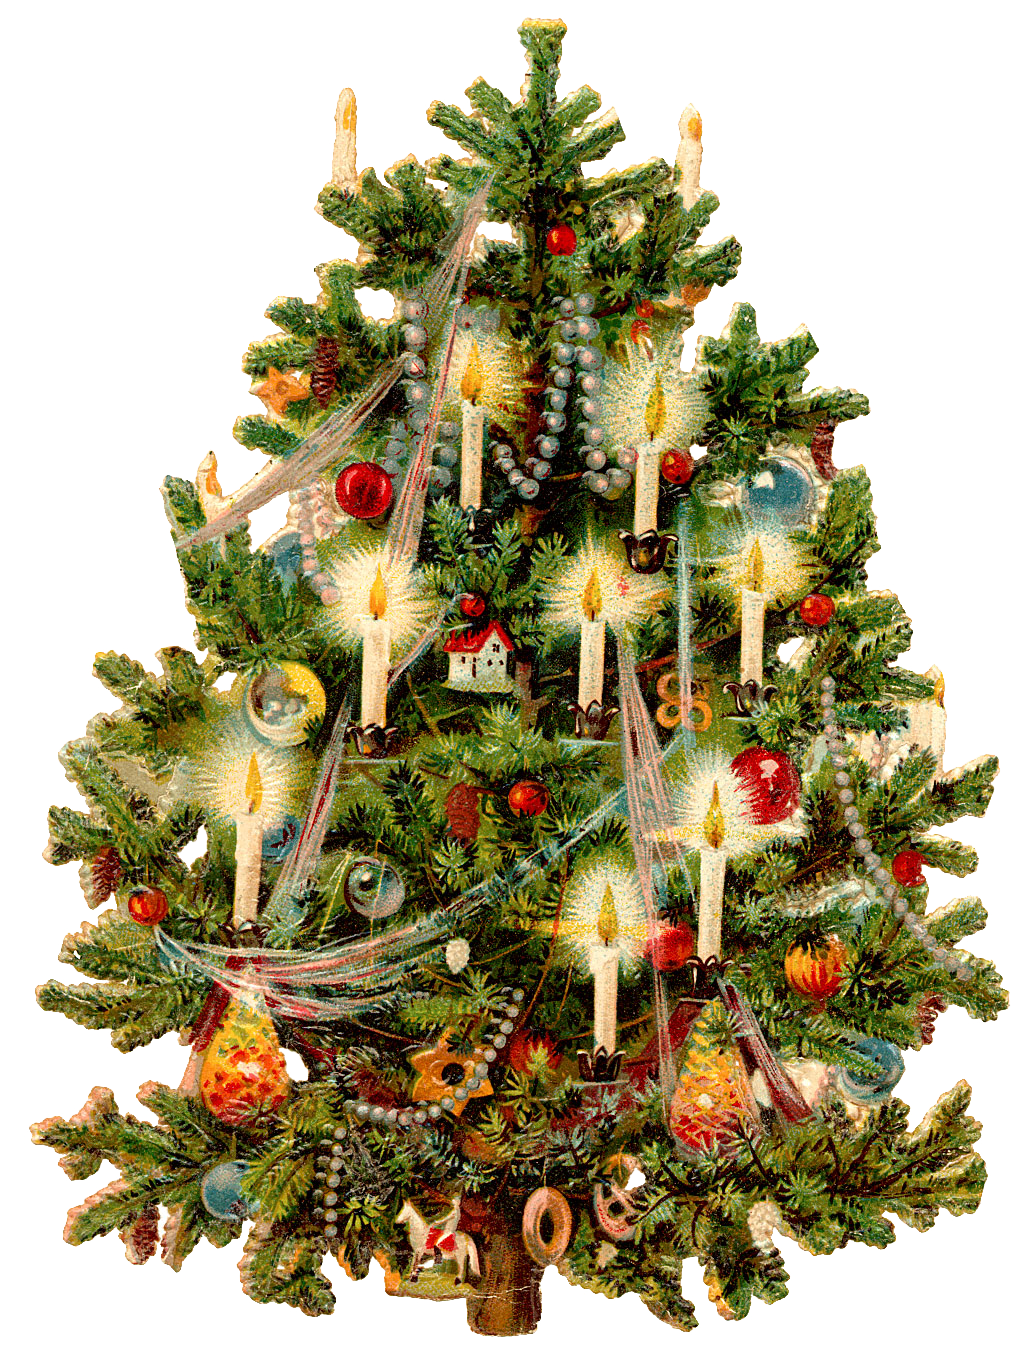 Victorian christmas background clipart clipart royalty free download Victorian Christmas Tree | XMAS clip art | Victorian ... clipart royalty free download